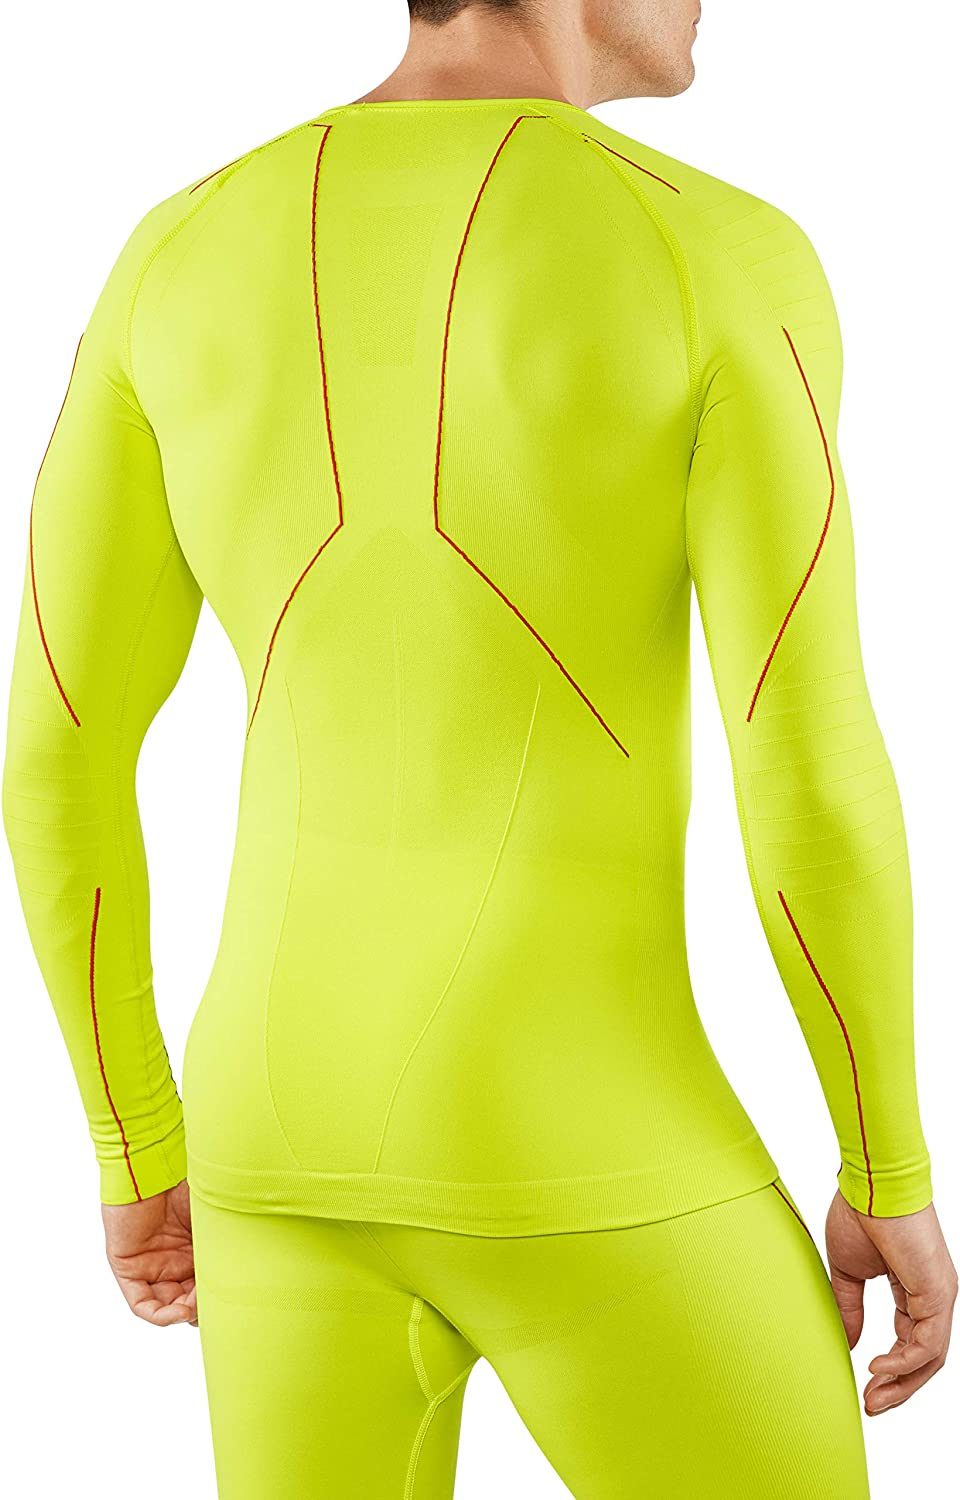 FALKE Herren Langarmshirt Warm Tight Fit, Sport Performance Material, 1 Stück Bright Yellow